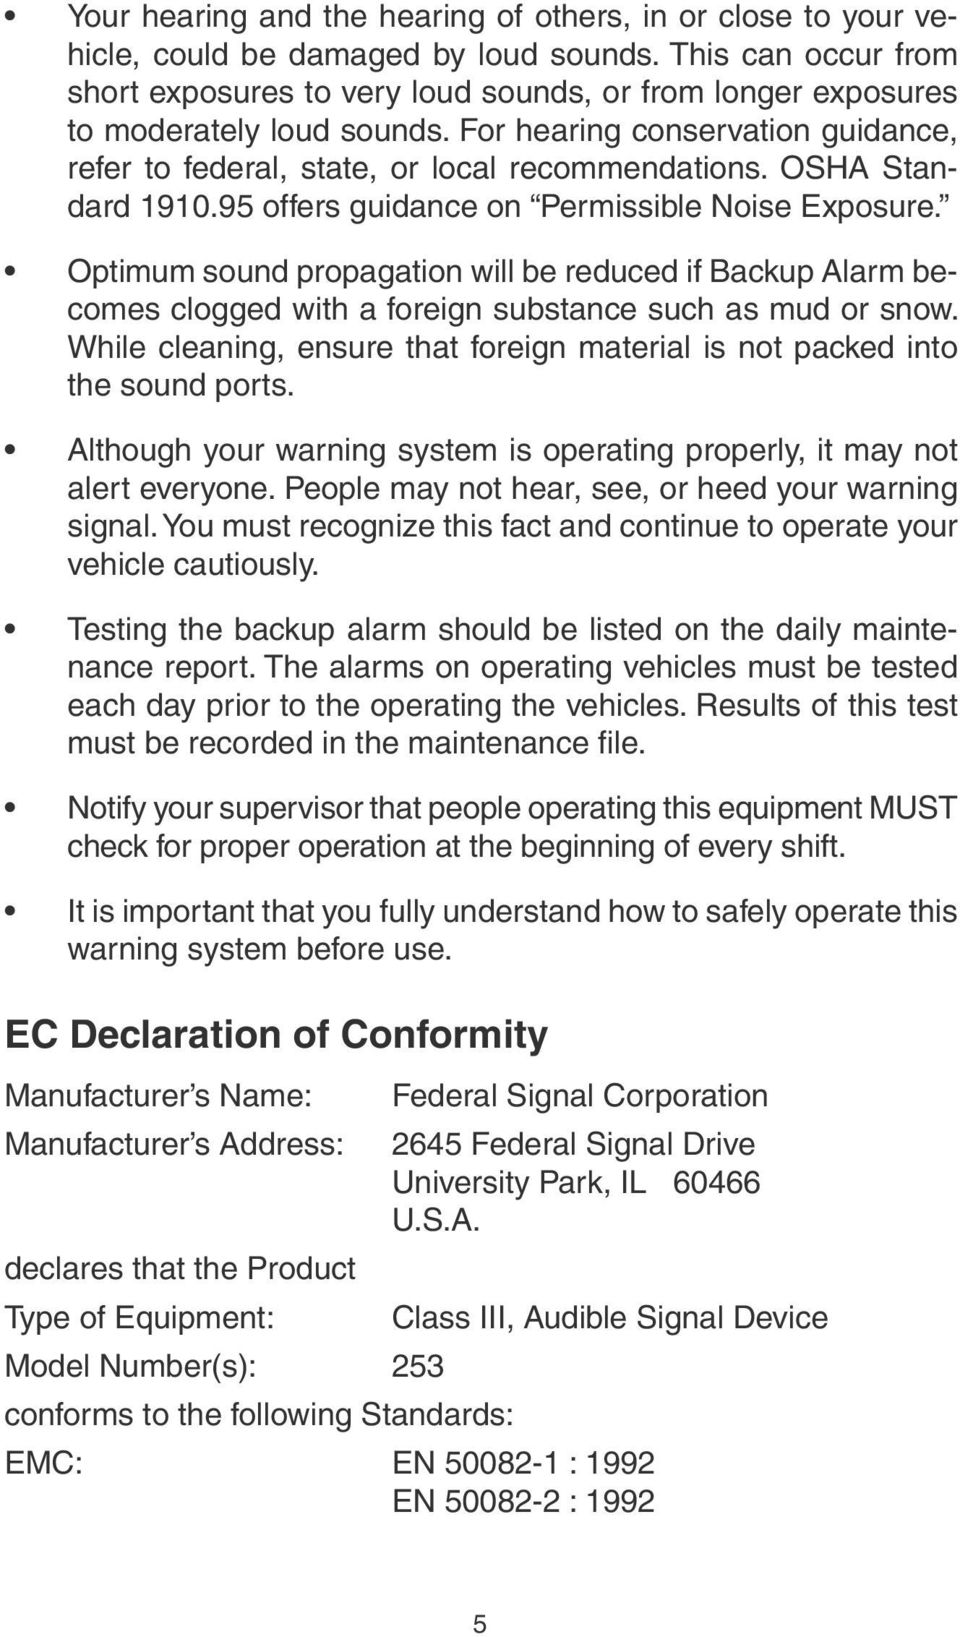 OSHA Standard 1910.95 offers guidance on Permissible Noise Exposure. Optimum sound propagation will be reduced if Backup Alarm becomes clogged with a foreign substance such as mud or snow.